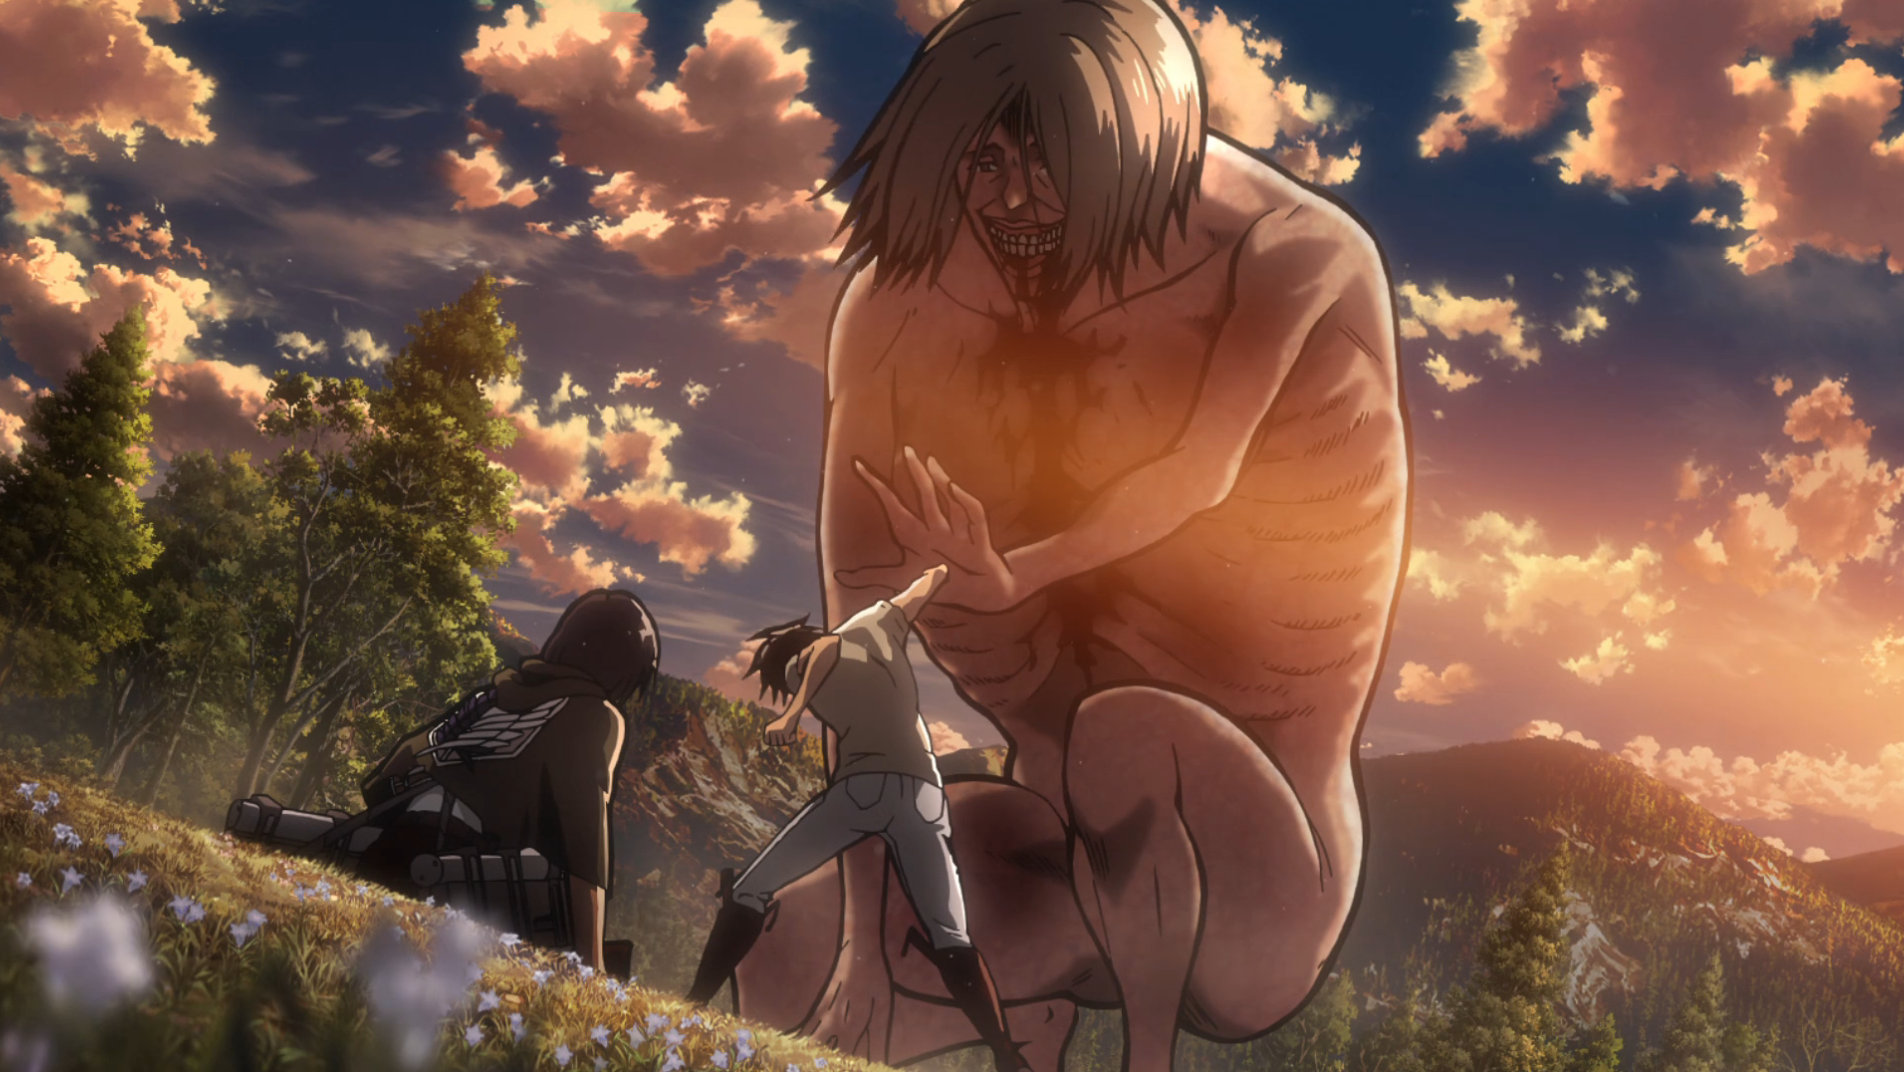 Eren Jaeger and 'Attack on Titan' Need to Grow Up in Season 3   Inverse